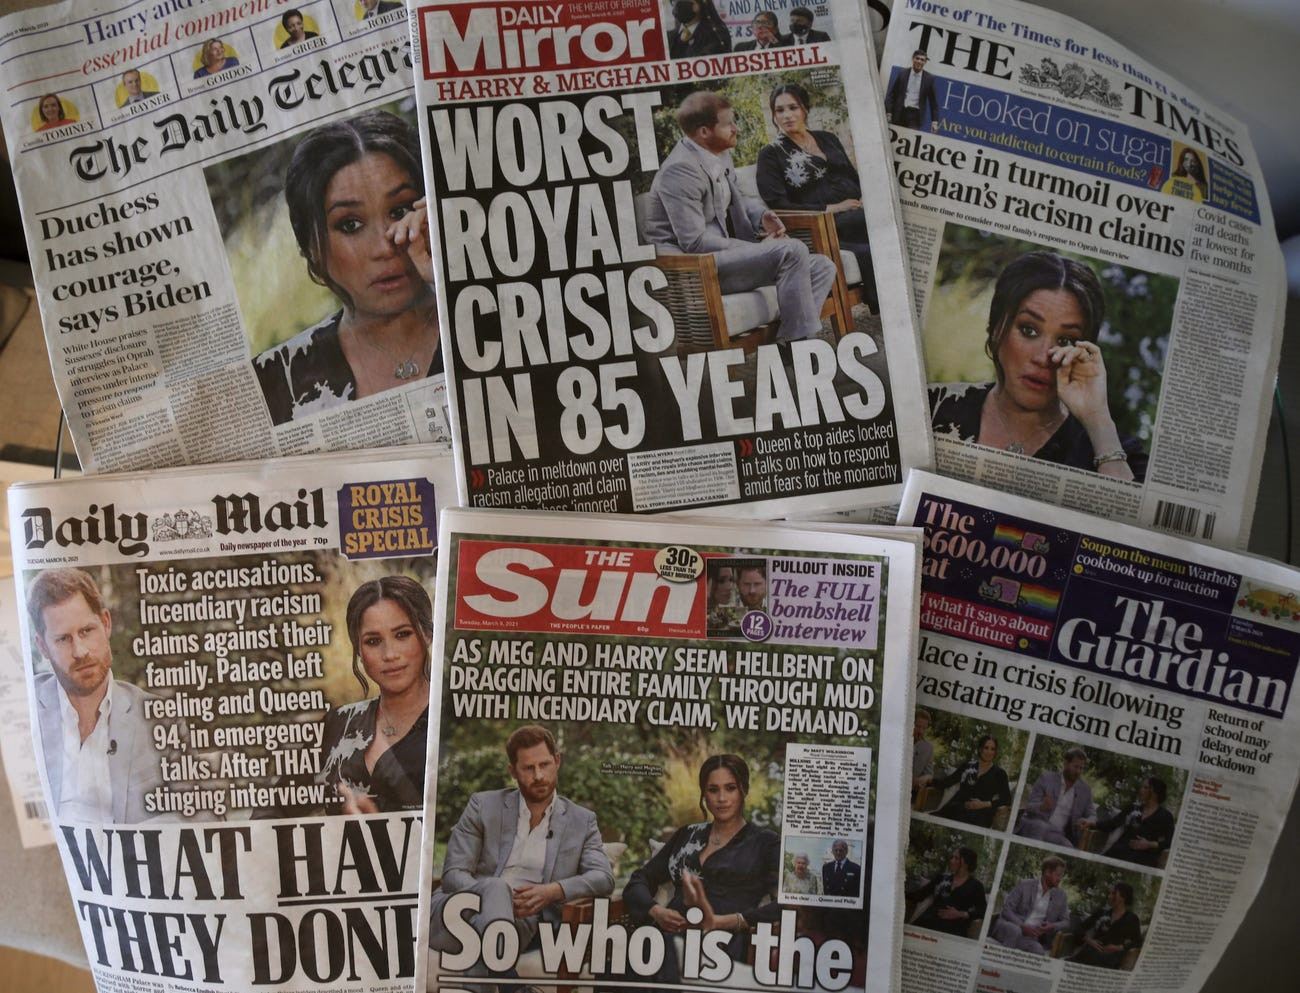 An arrangement of UK daily newspapers from March 9, 2021 show front page headlines reporting on Harry and Meghan's Oprah interview.